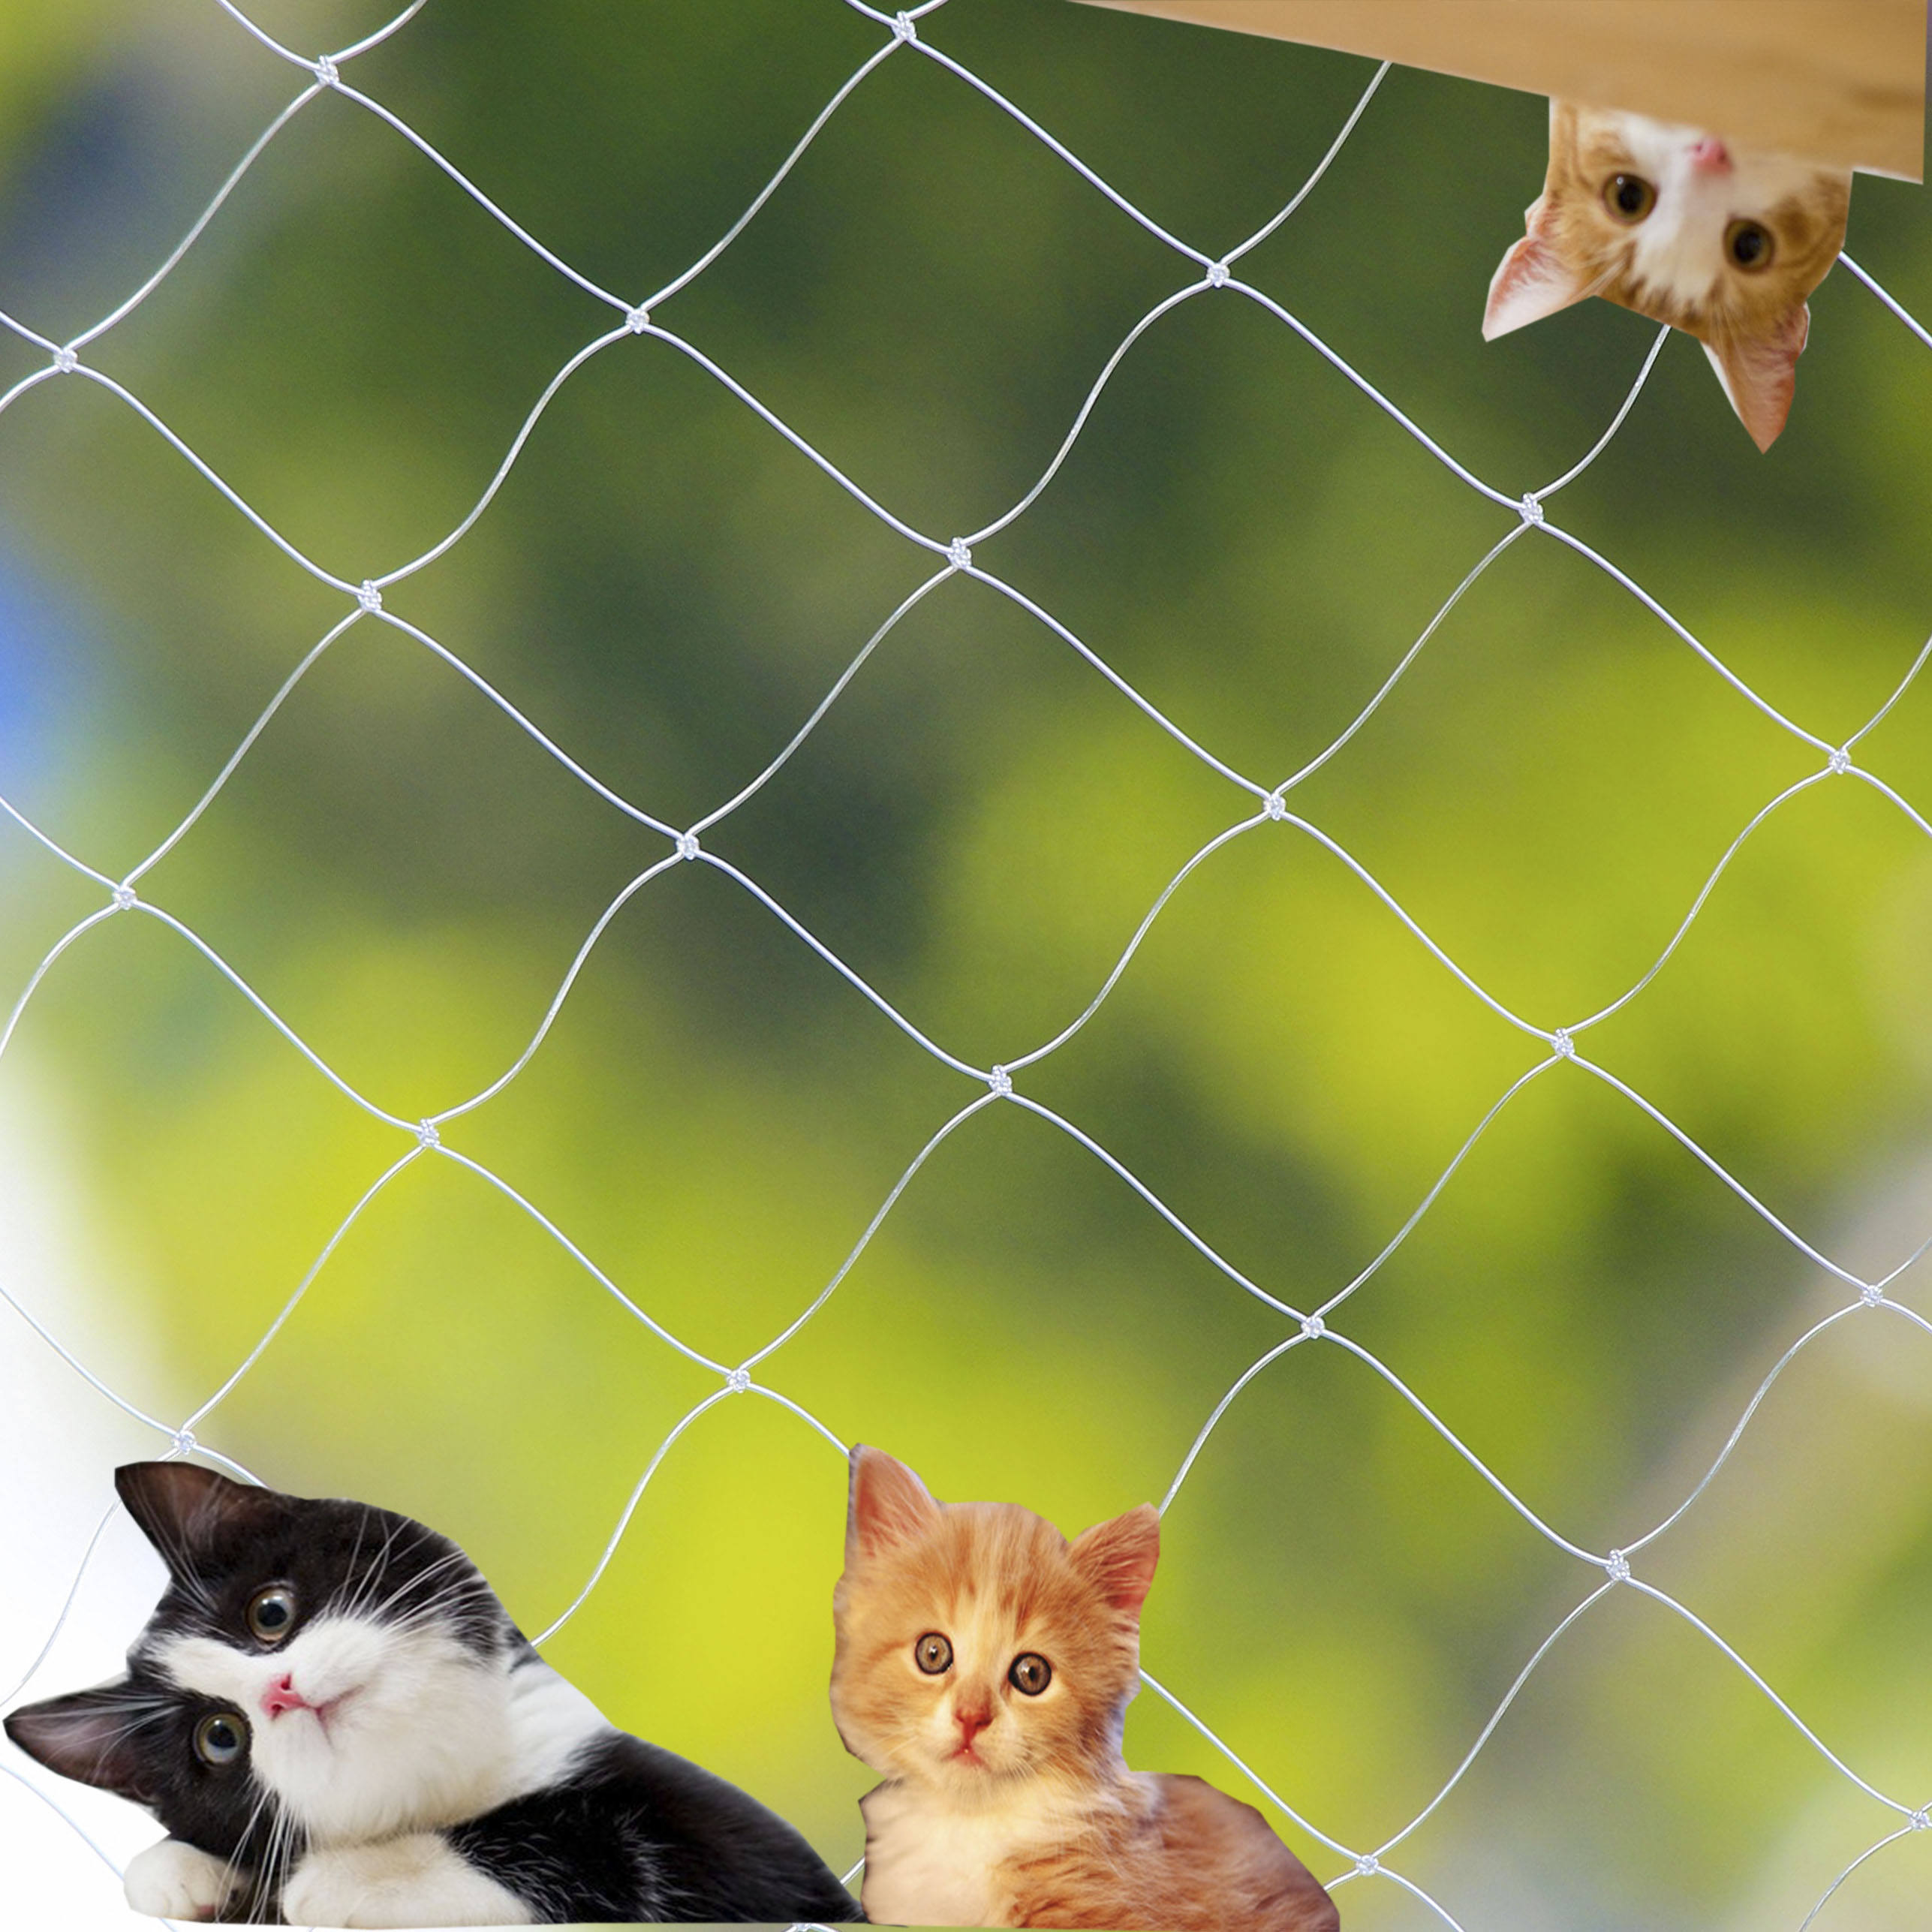 cat protection net transparent cat safety net balcony safety net for cat